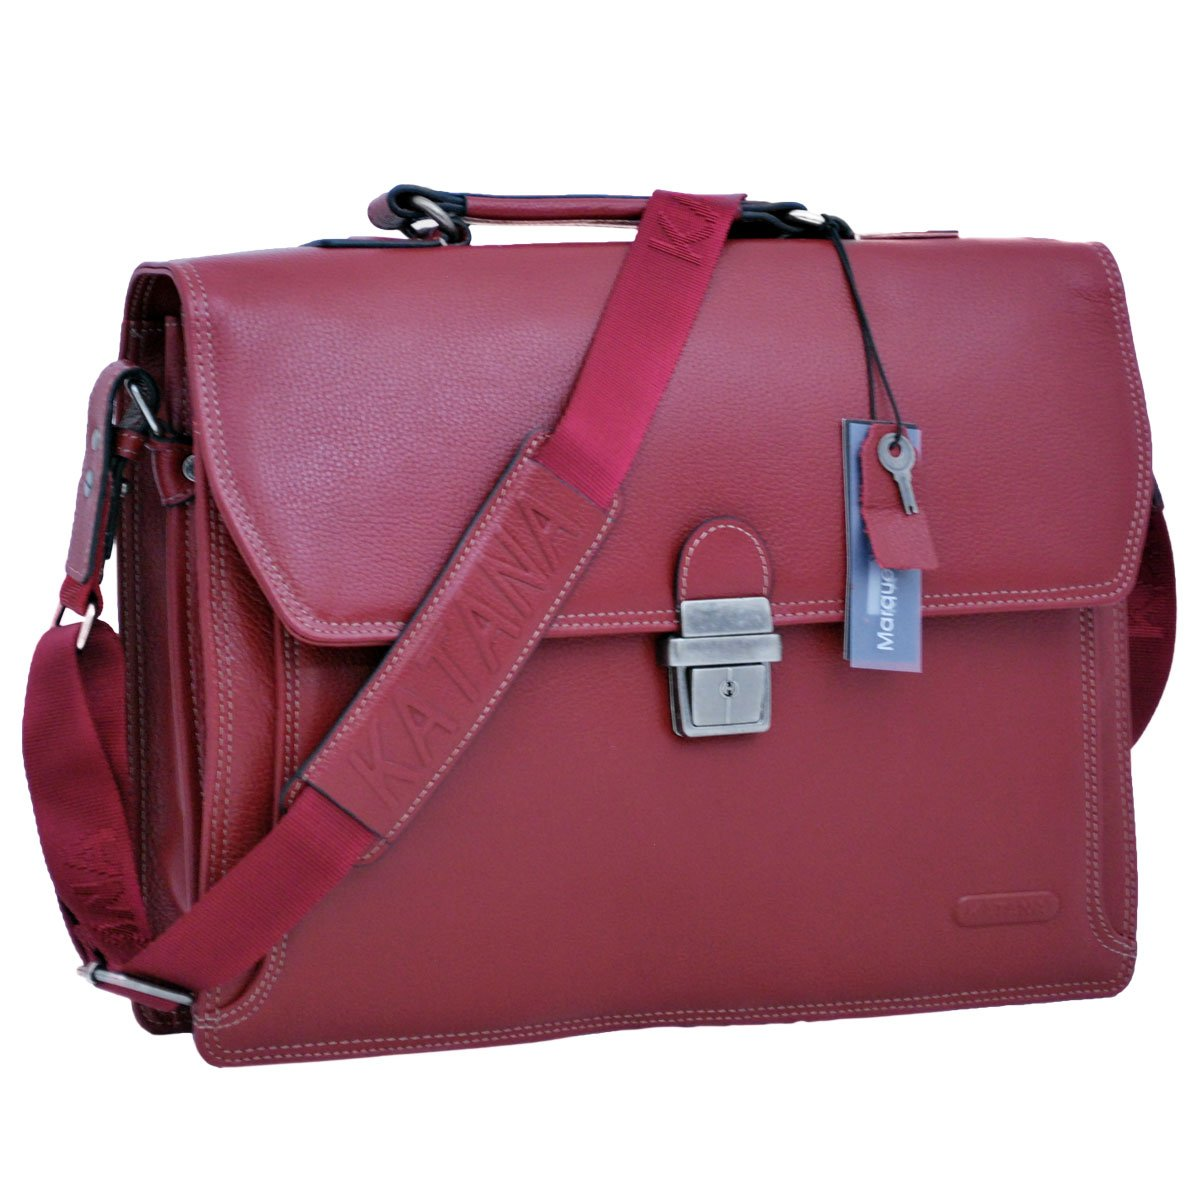 Cartable adulte en cuir grainé Rouge 2 soufflets